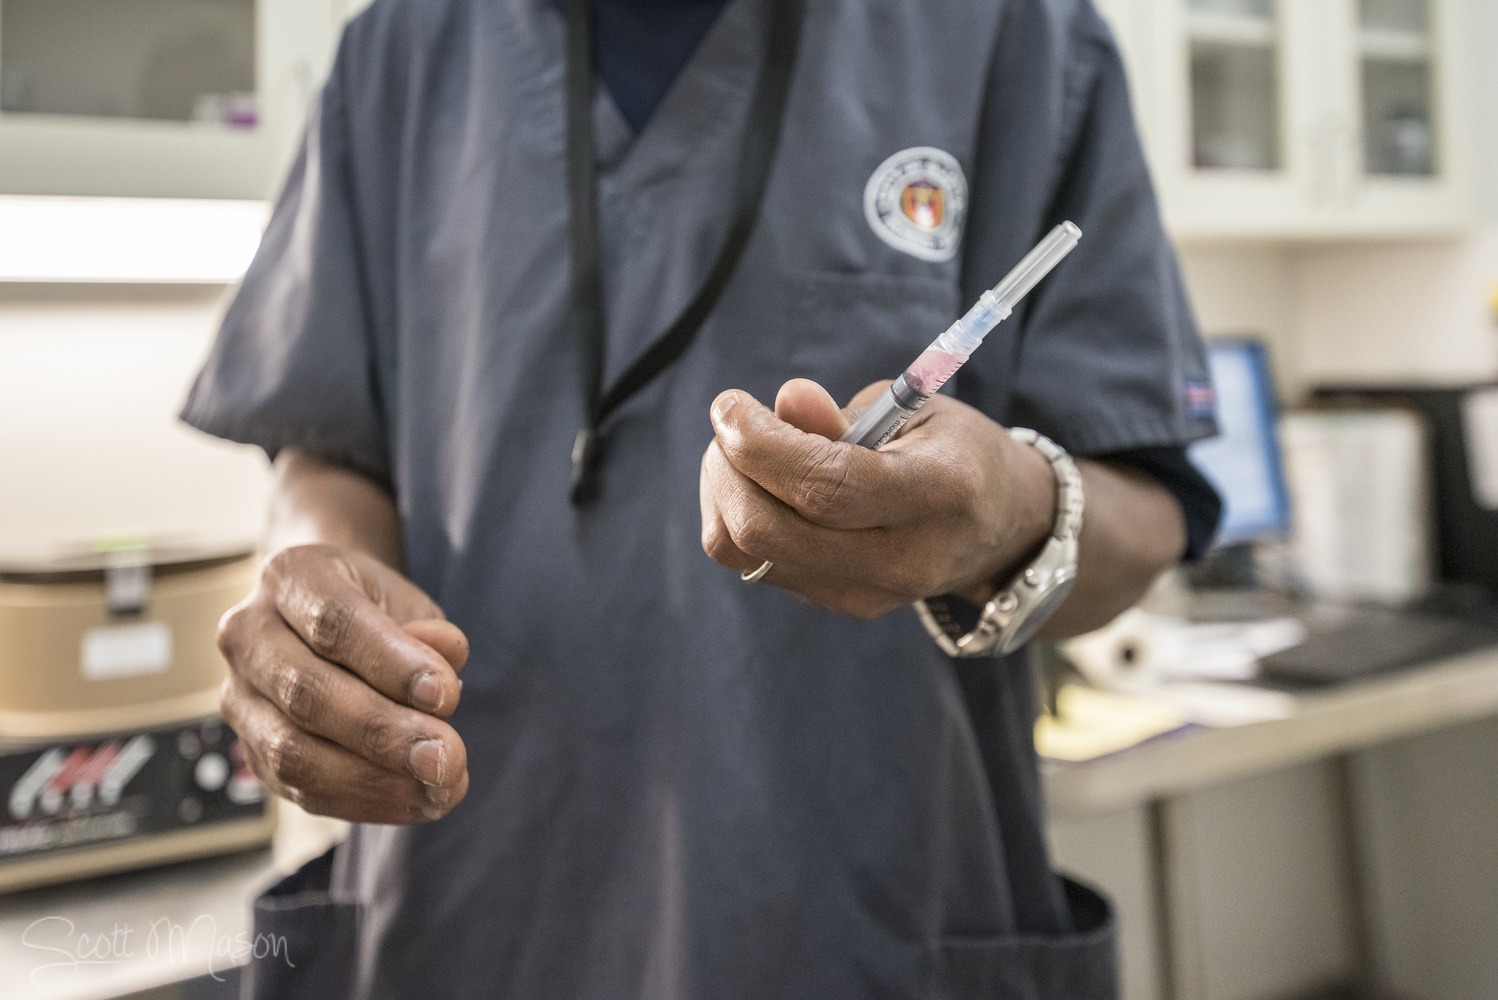 a healthcare working holding a syringe with a vaccine